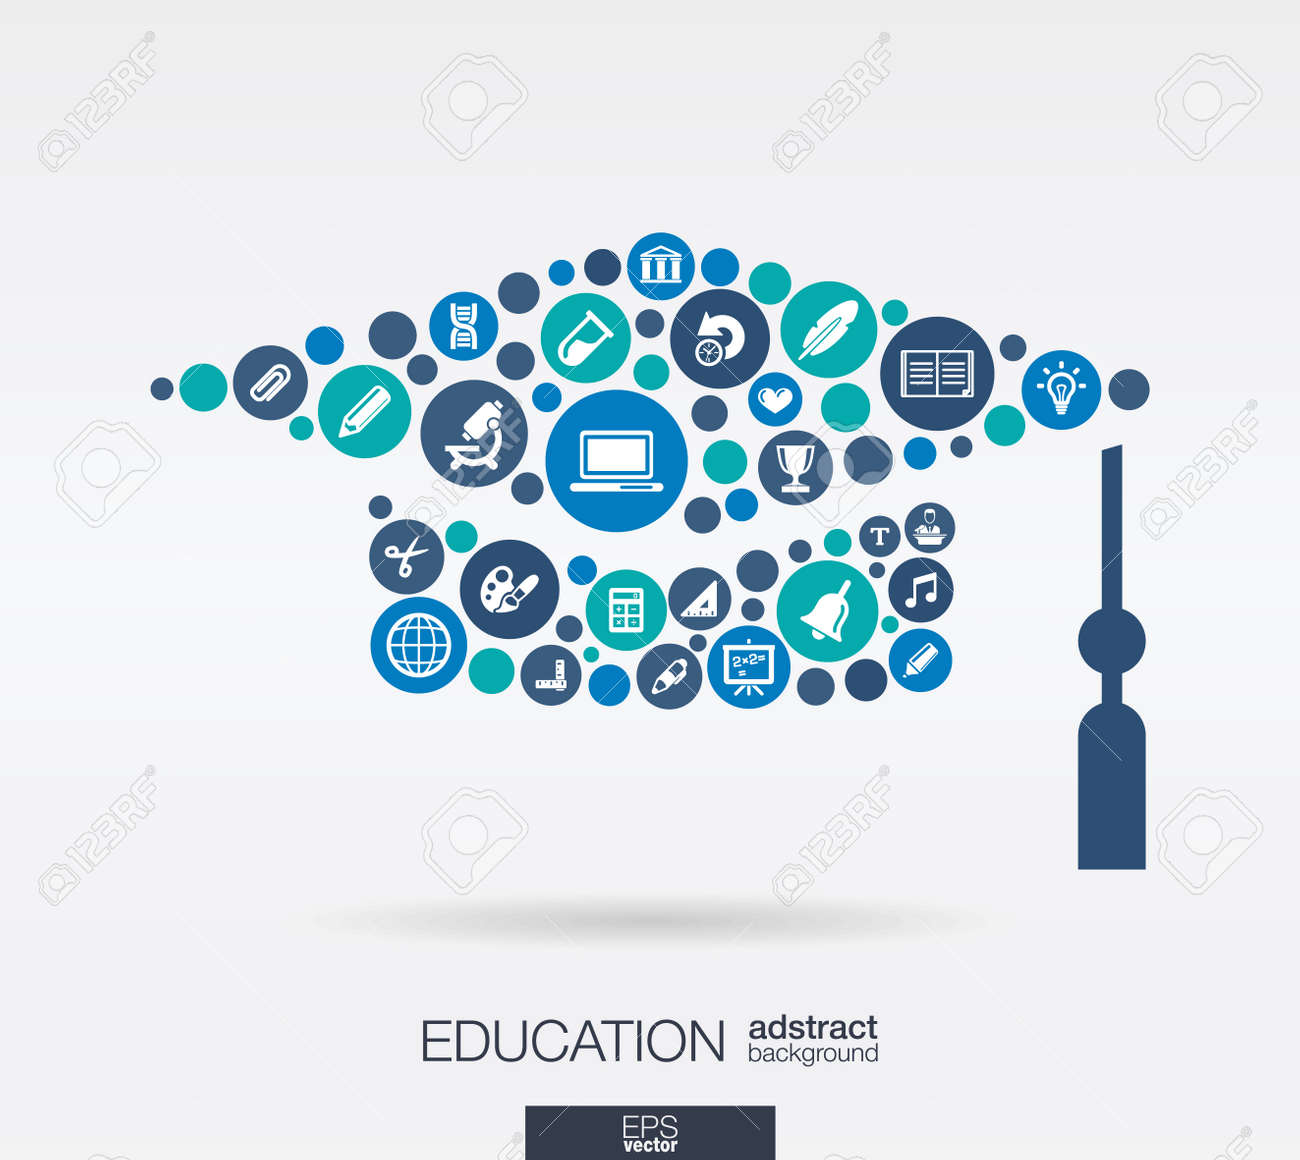 Color circles, flat icons in a graduation hat shape: education, school, science, knowledge, e learning concepts. - 43347915